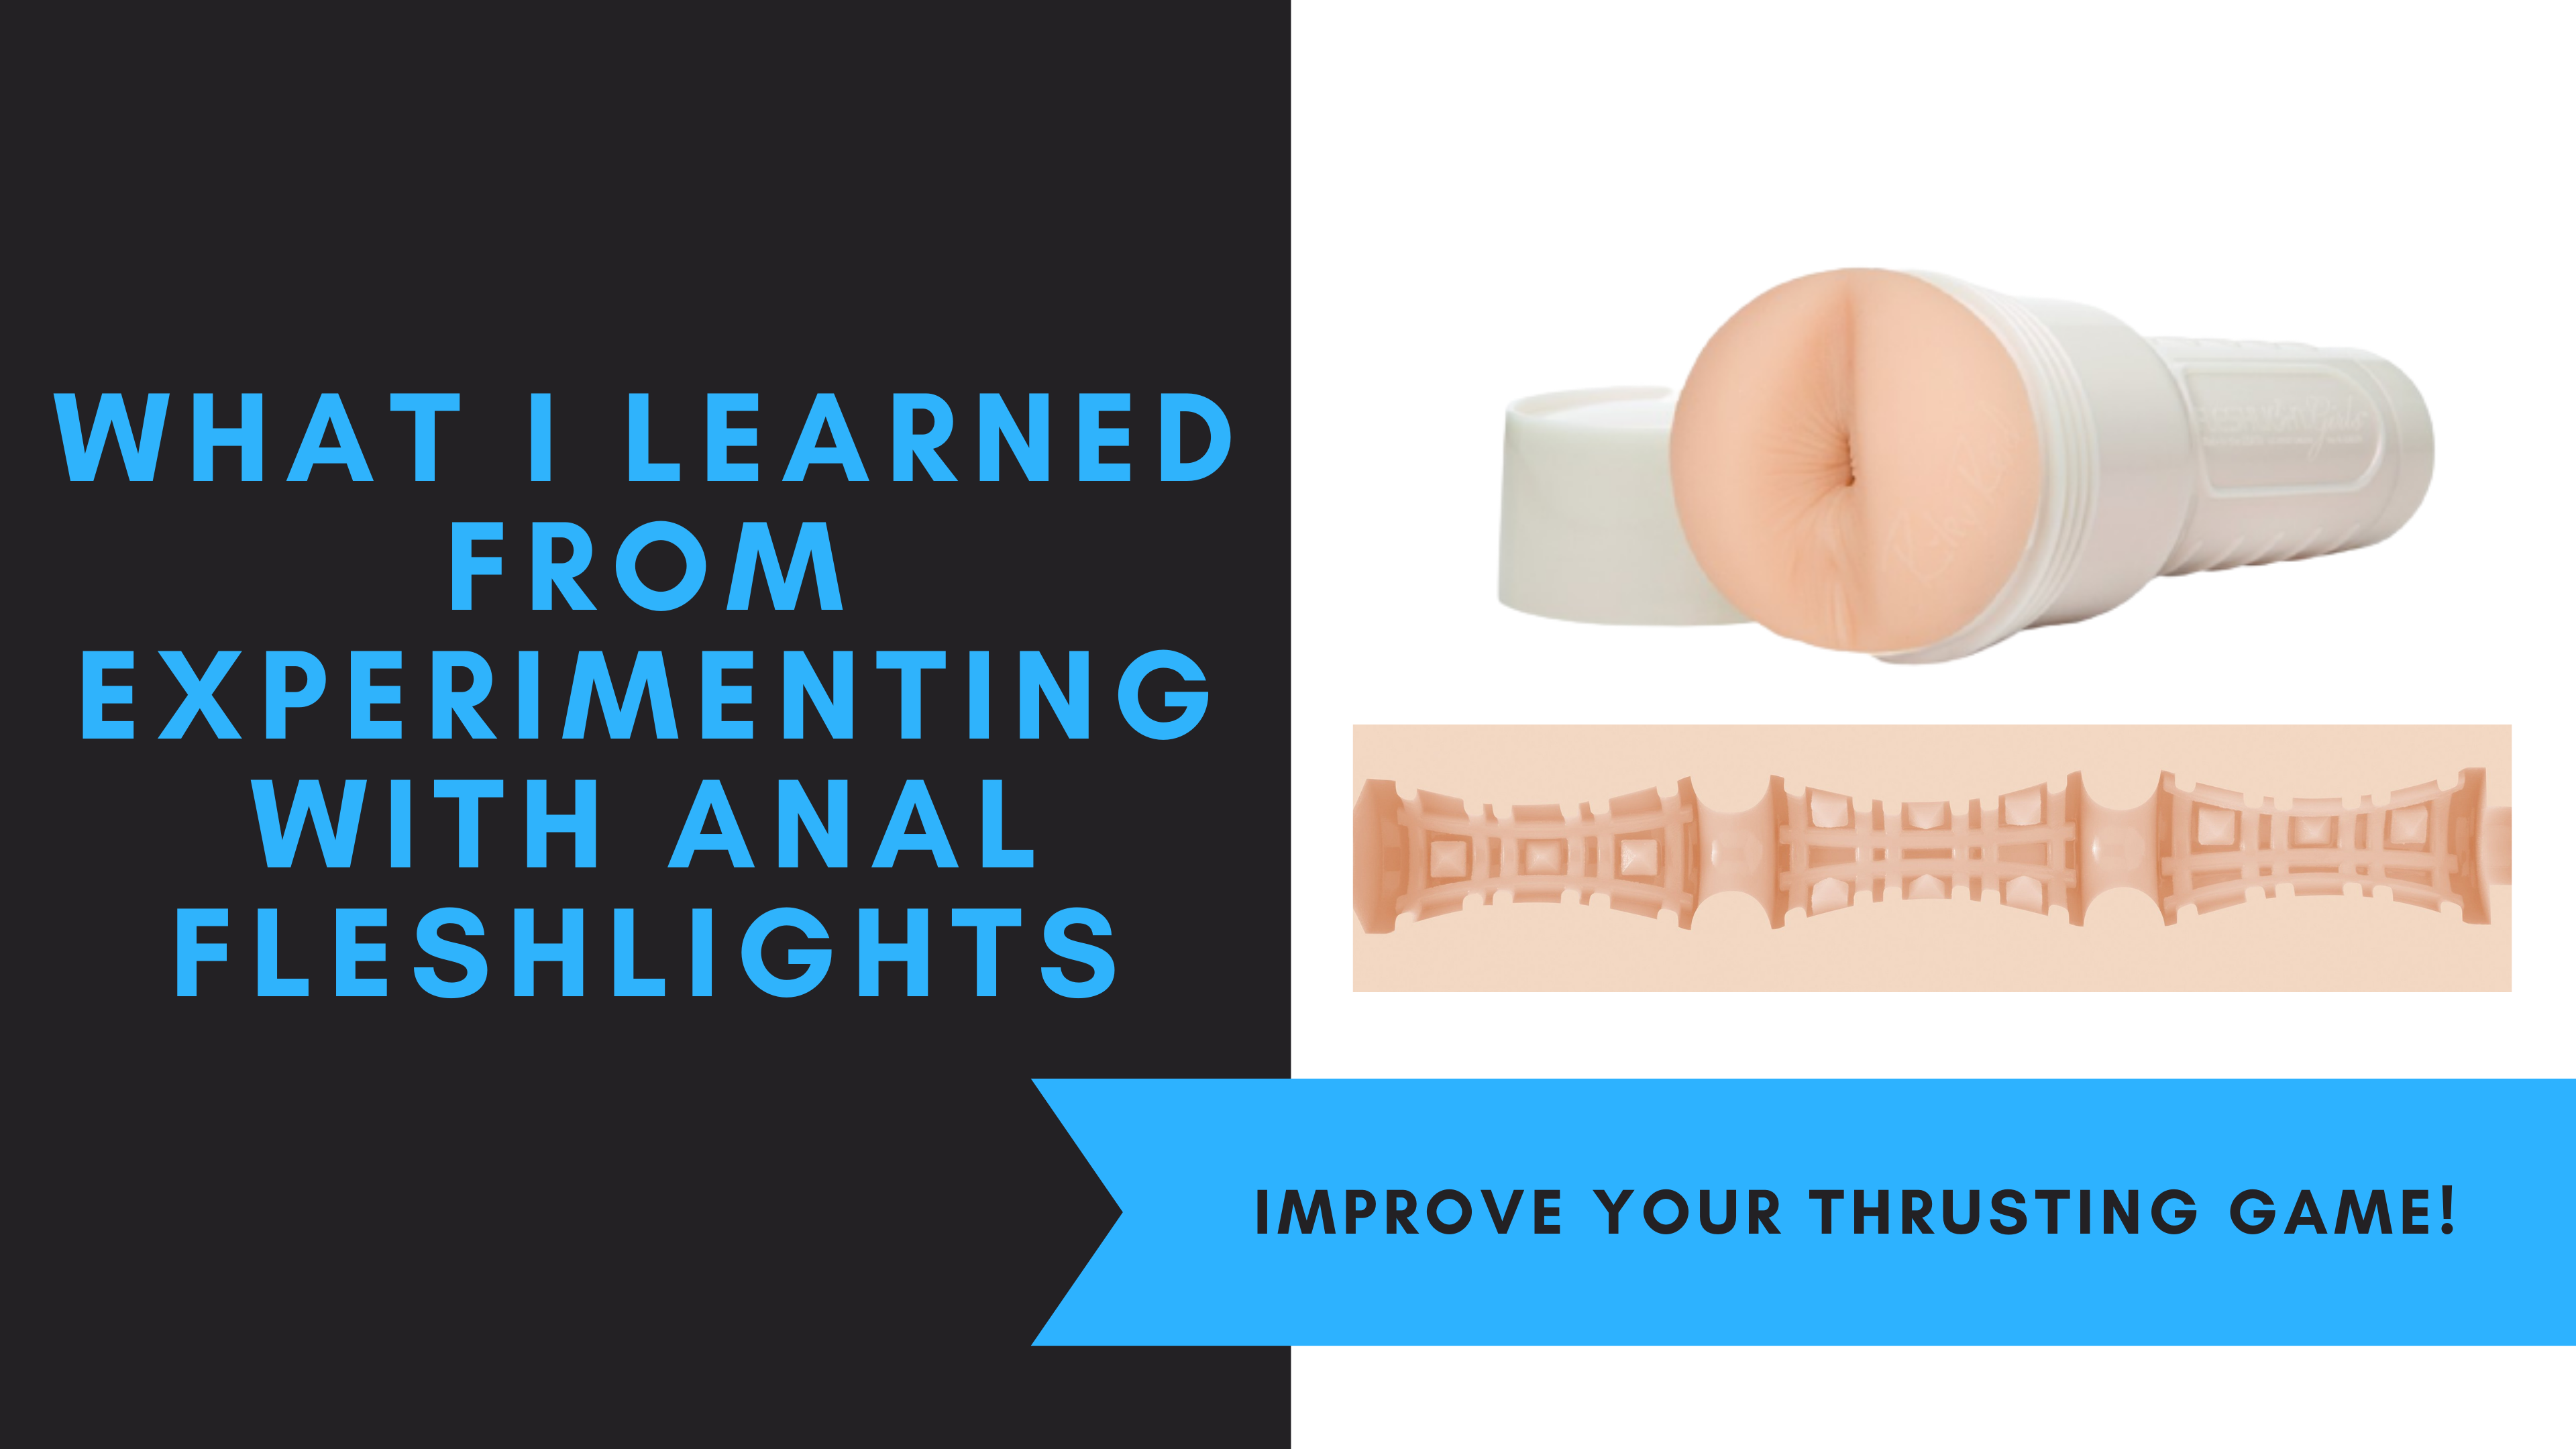 What I Learned From Experimenting With Anal Fleshlights